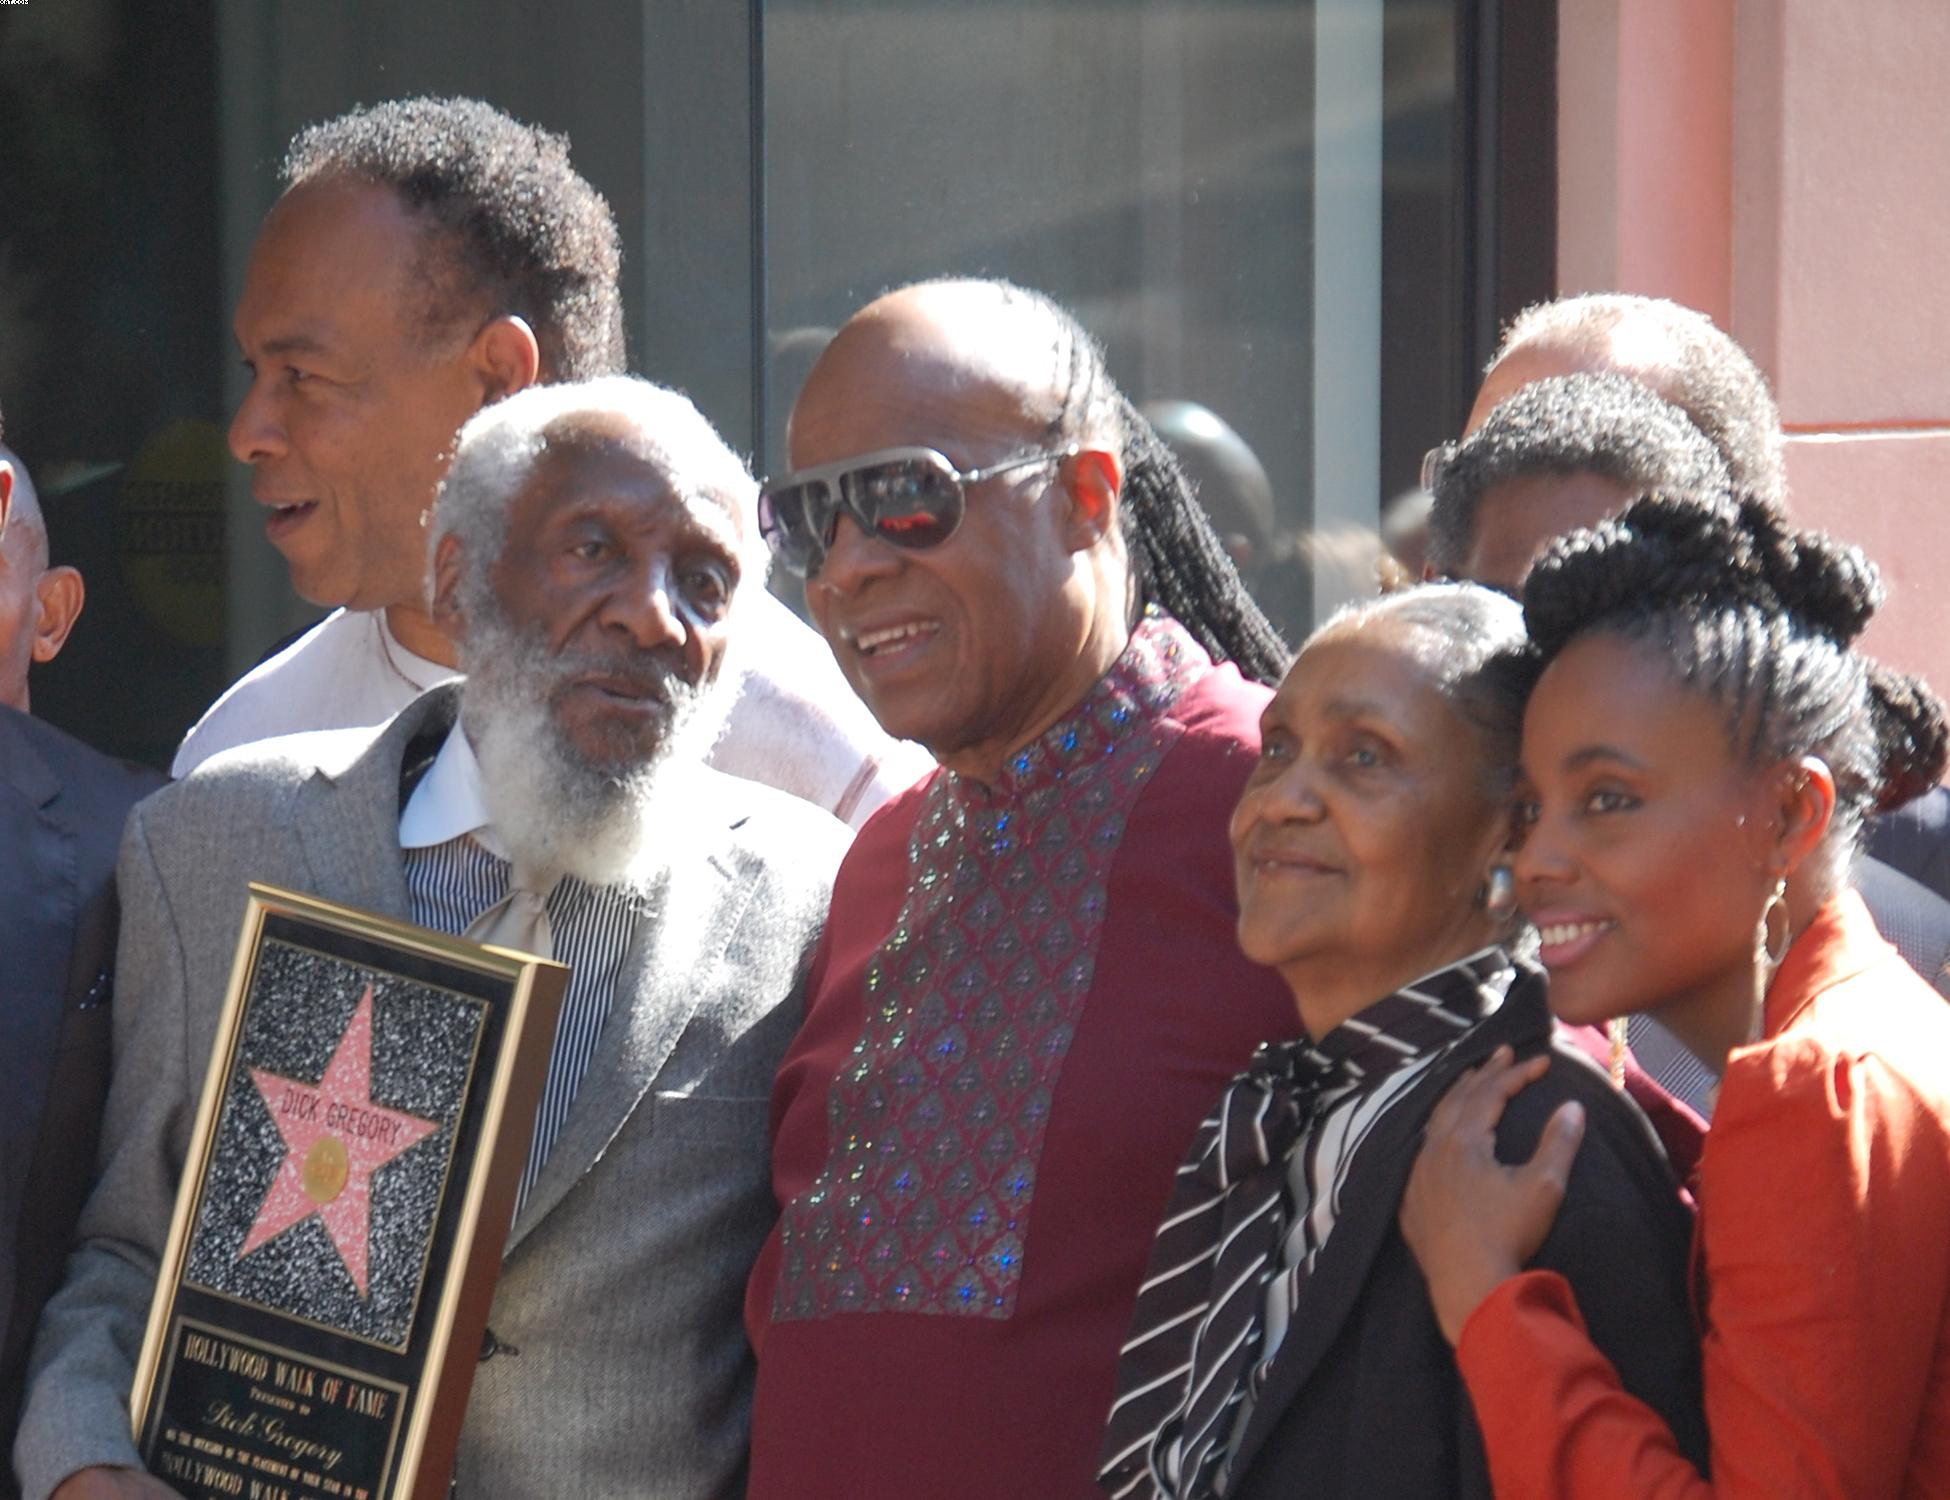 Dick Gregory gets Star on Hollywood Walk of Fame